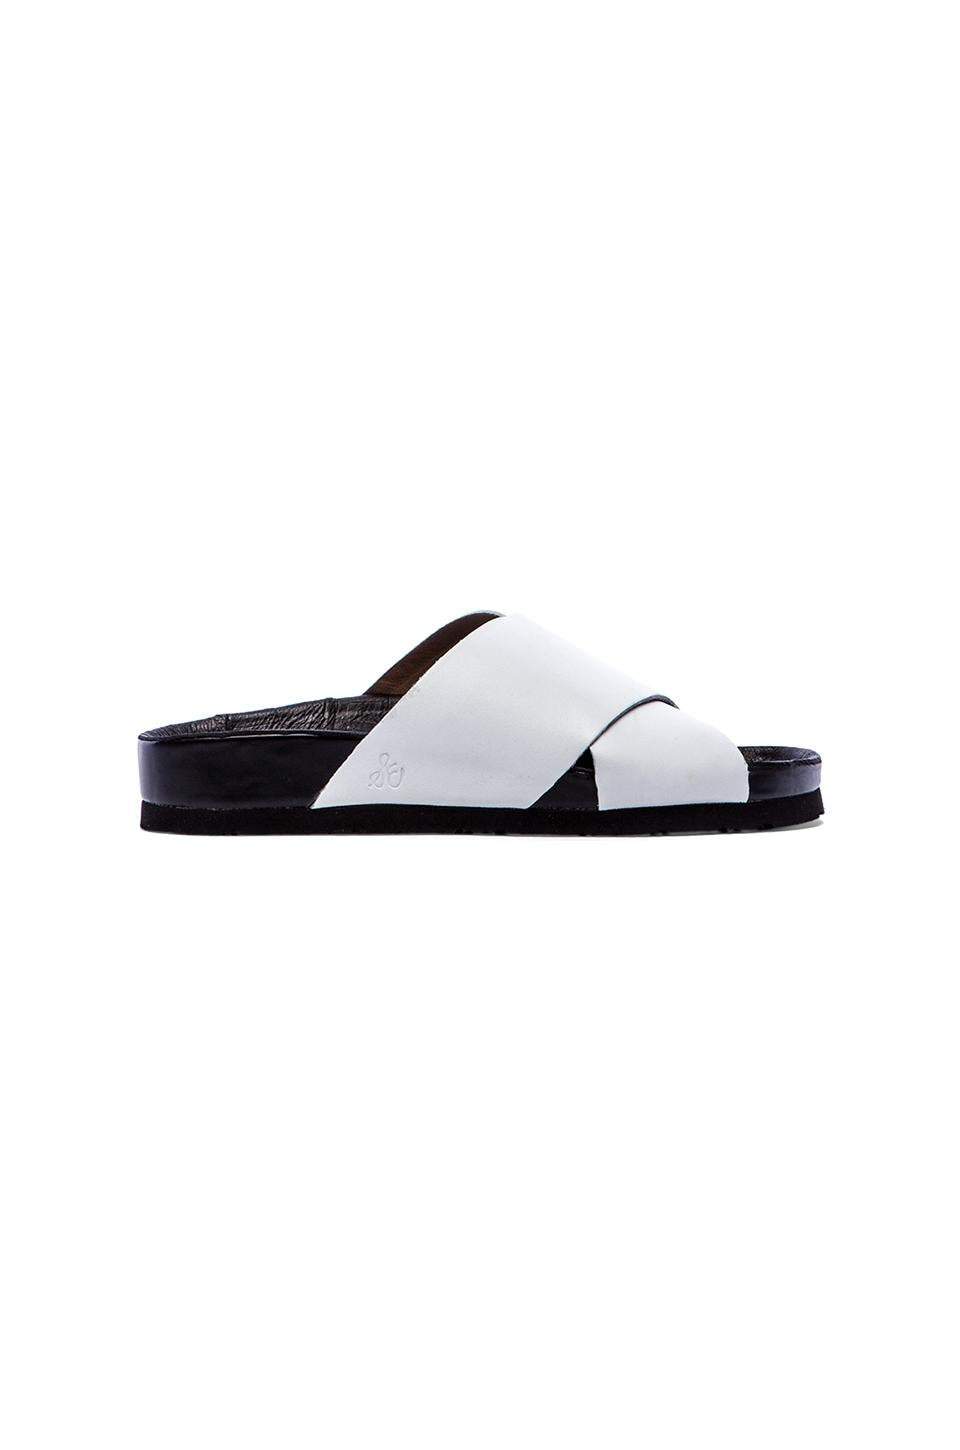 Sam Edelman Adora Sandal in White